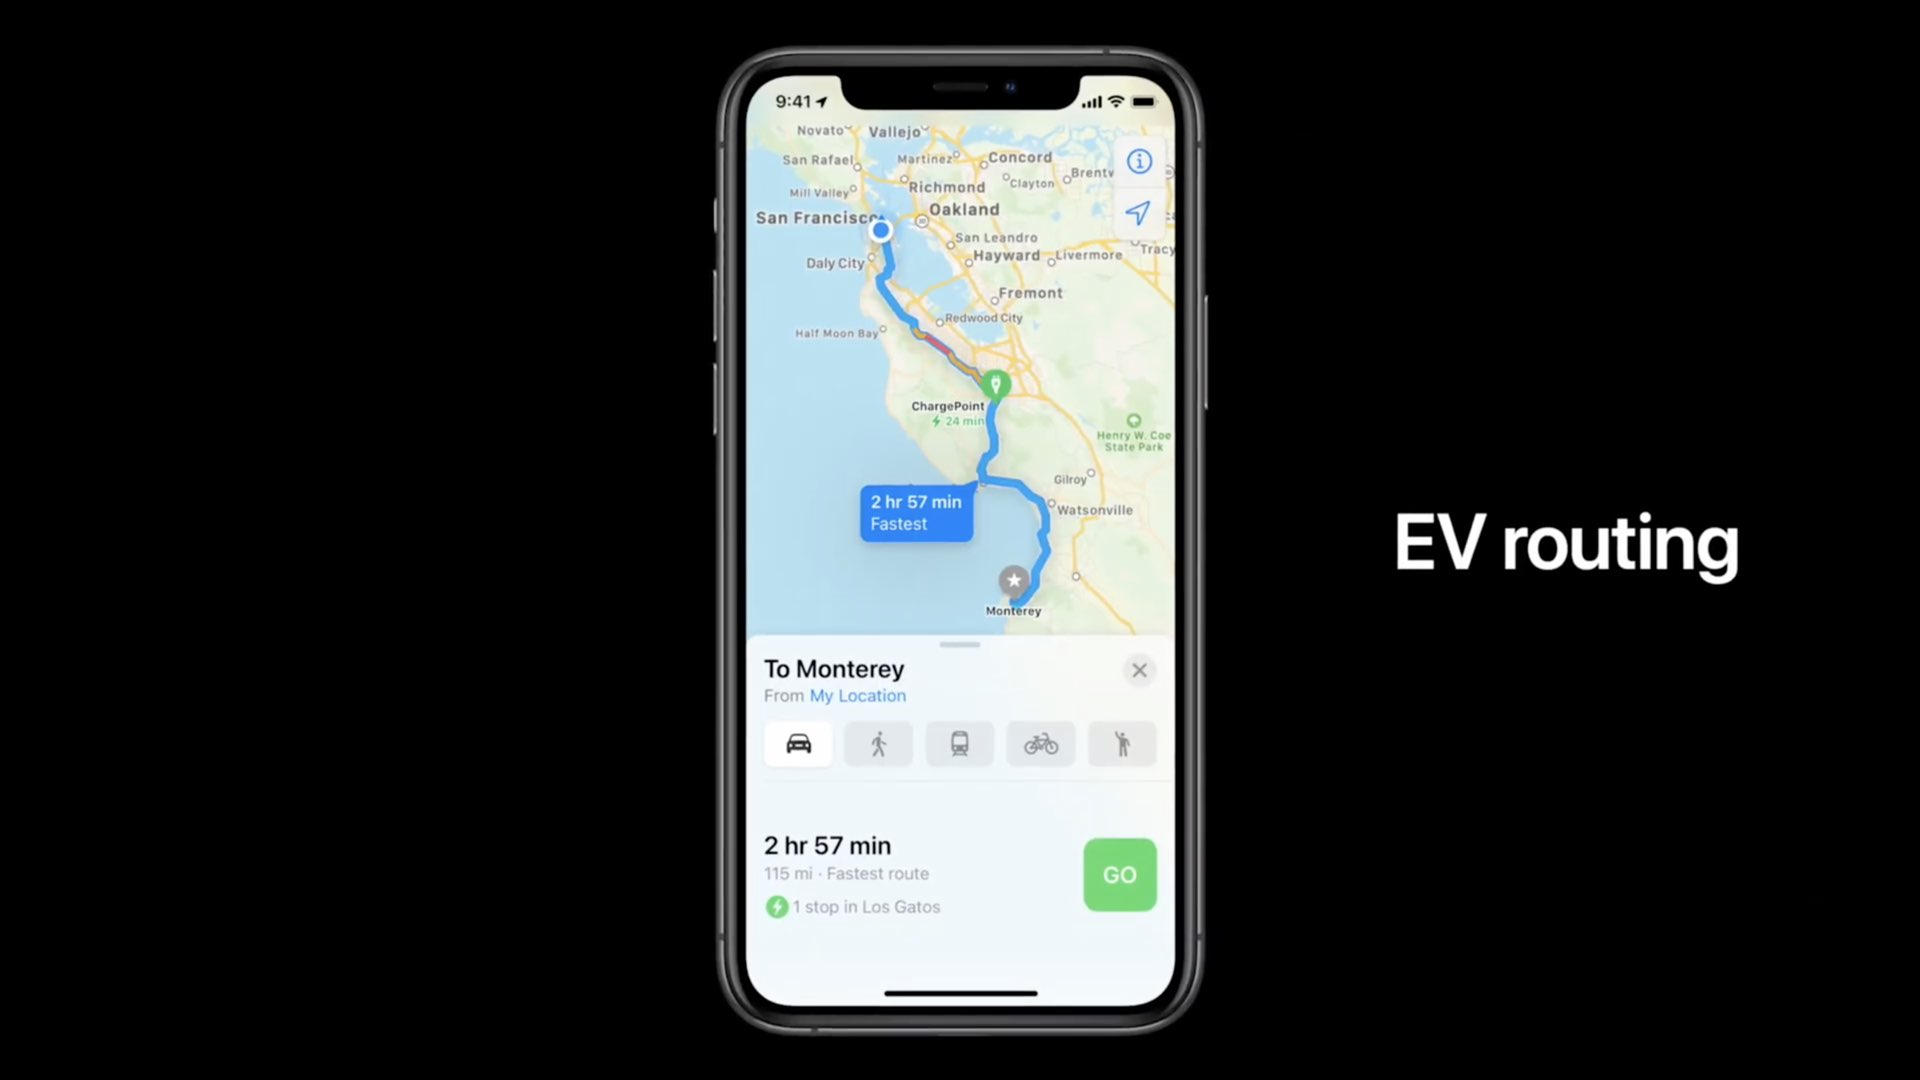 Apple Maps electric vehicle routing - a WWDC 2020 slide showing EV routing running on an iPhone